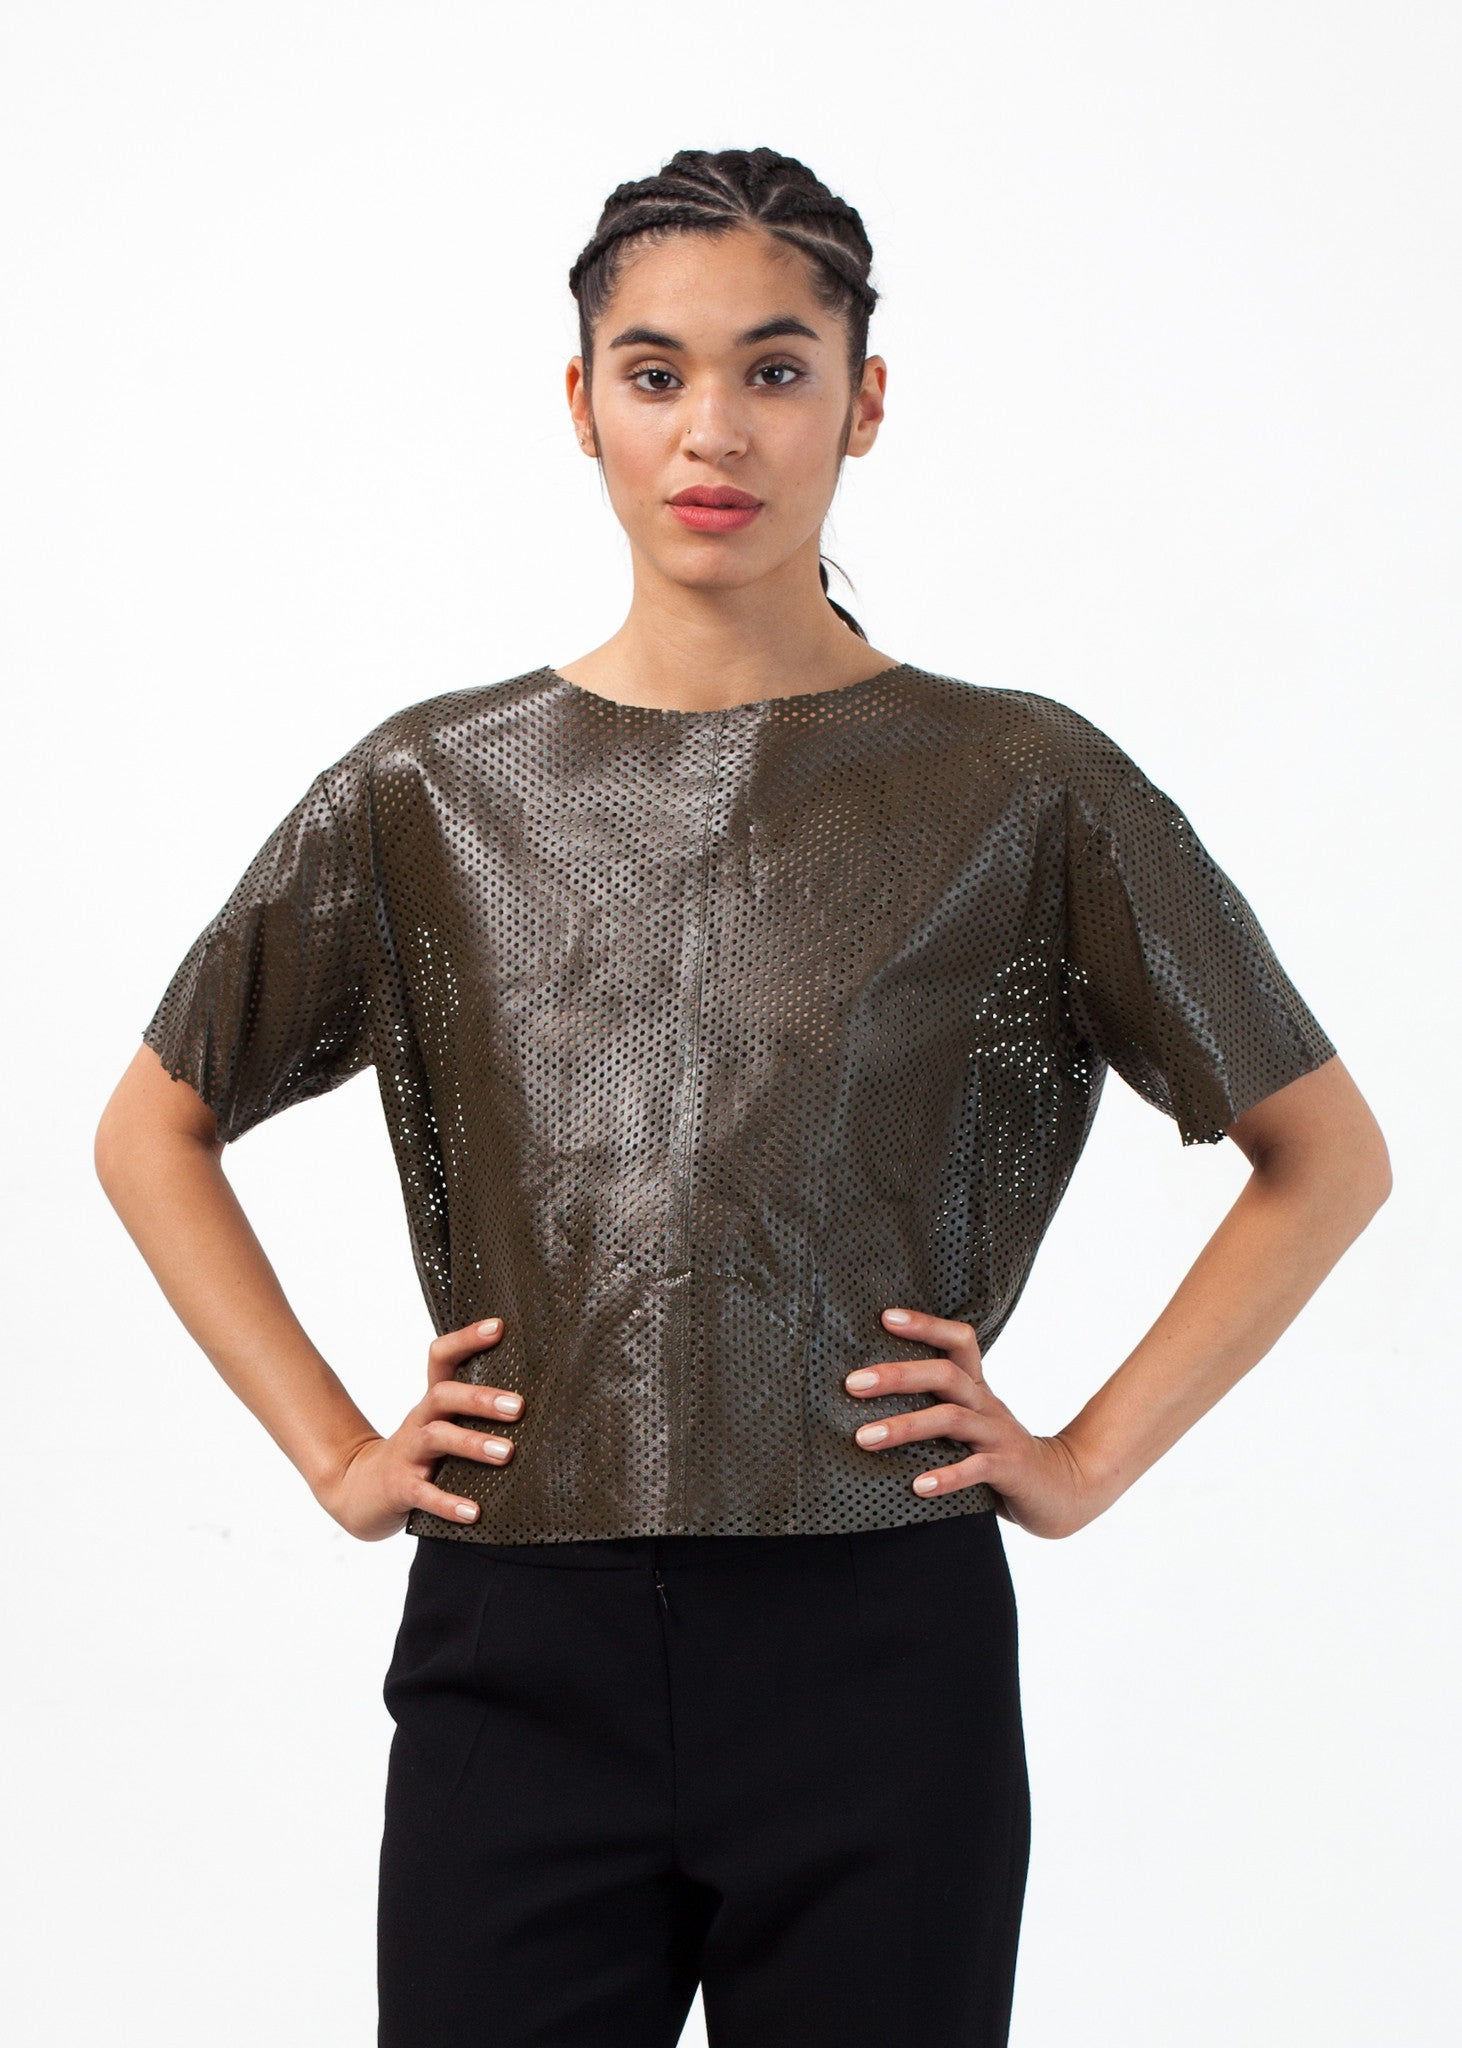 Auralias Leather Top